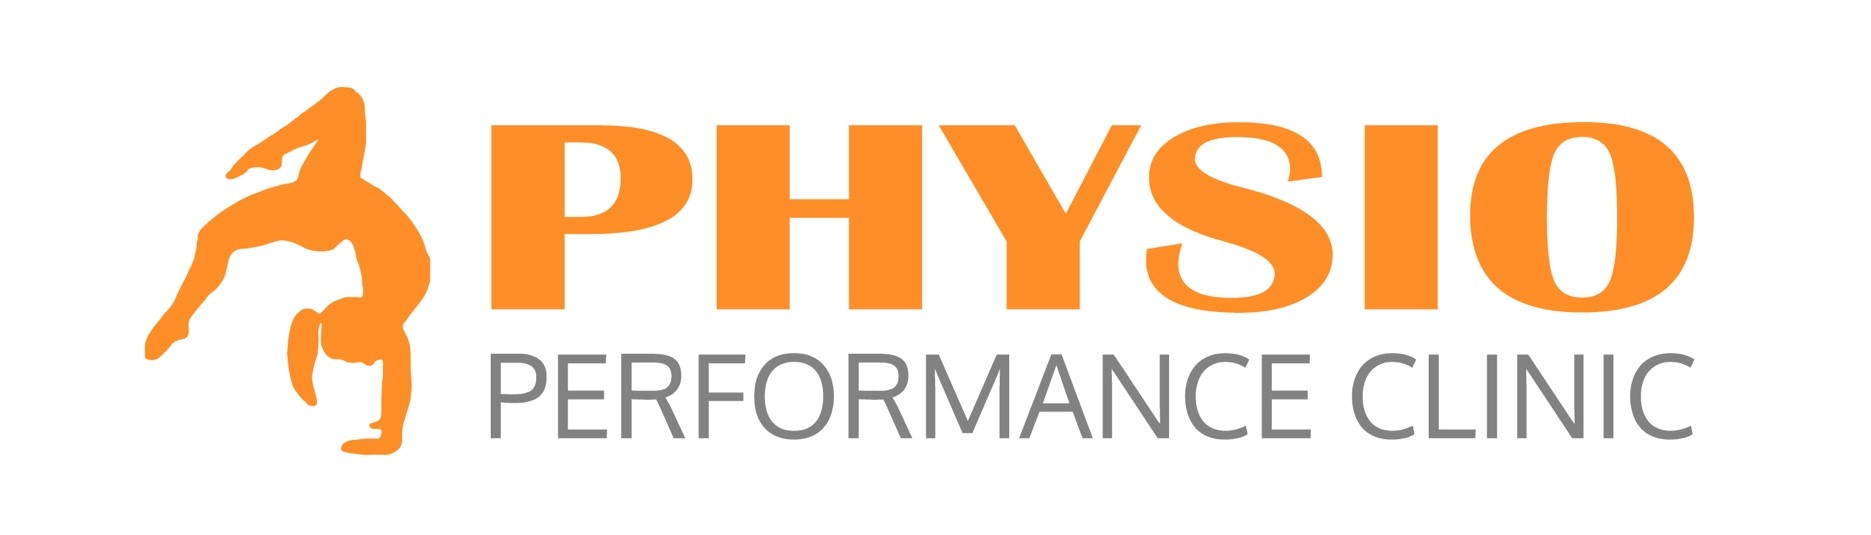 Physio Performance Clinic